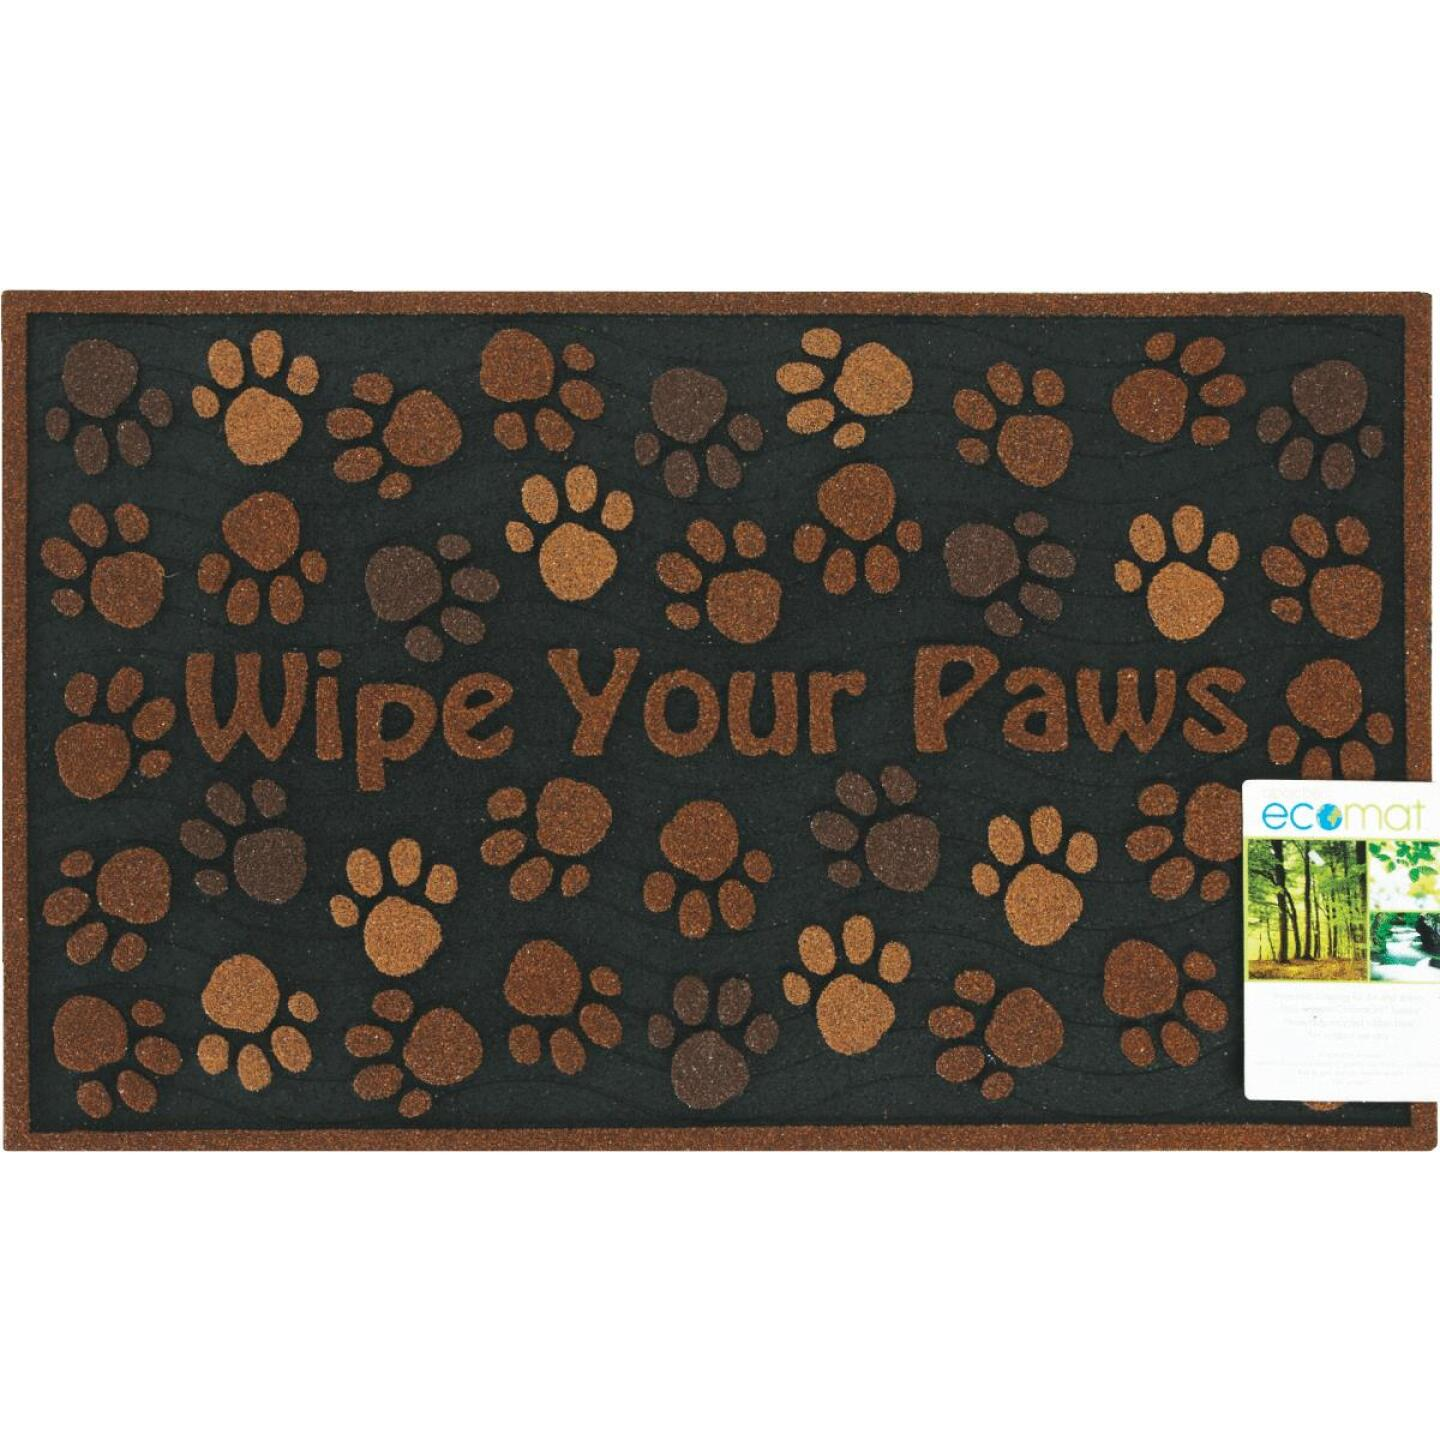 Apache Wipe Your Paws 18 In. x 30 In. Recycled Rubber Door Mat Image 2